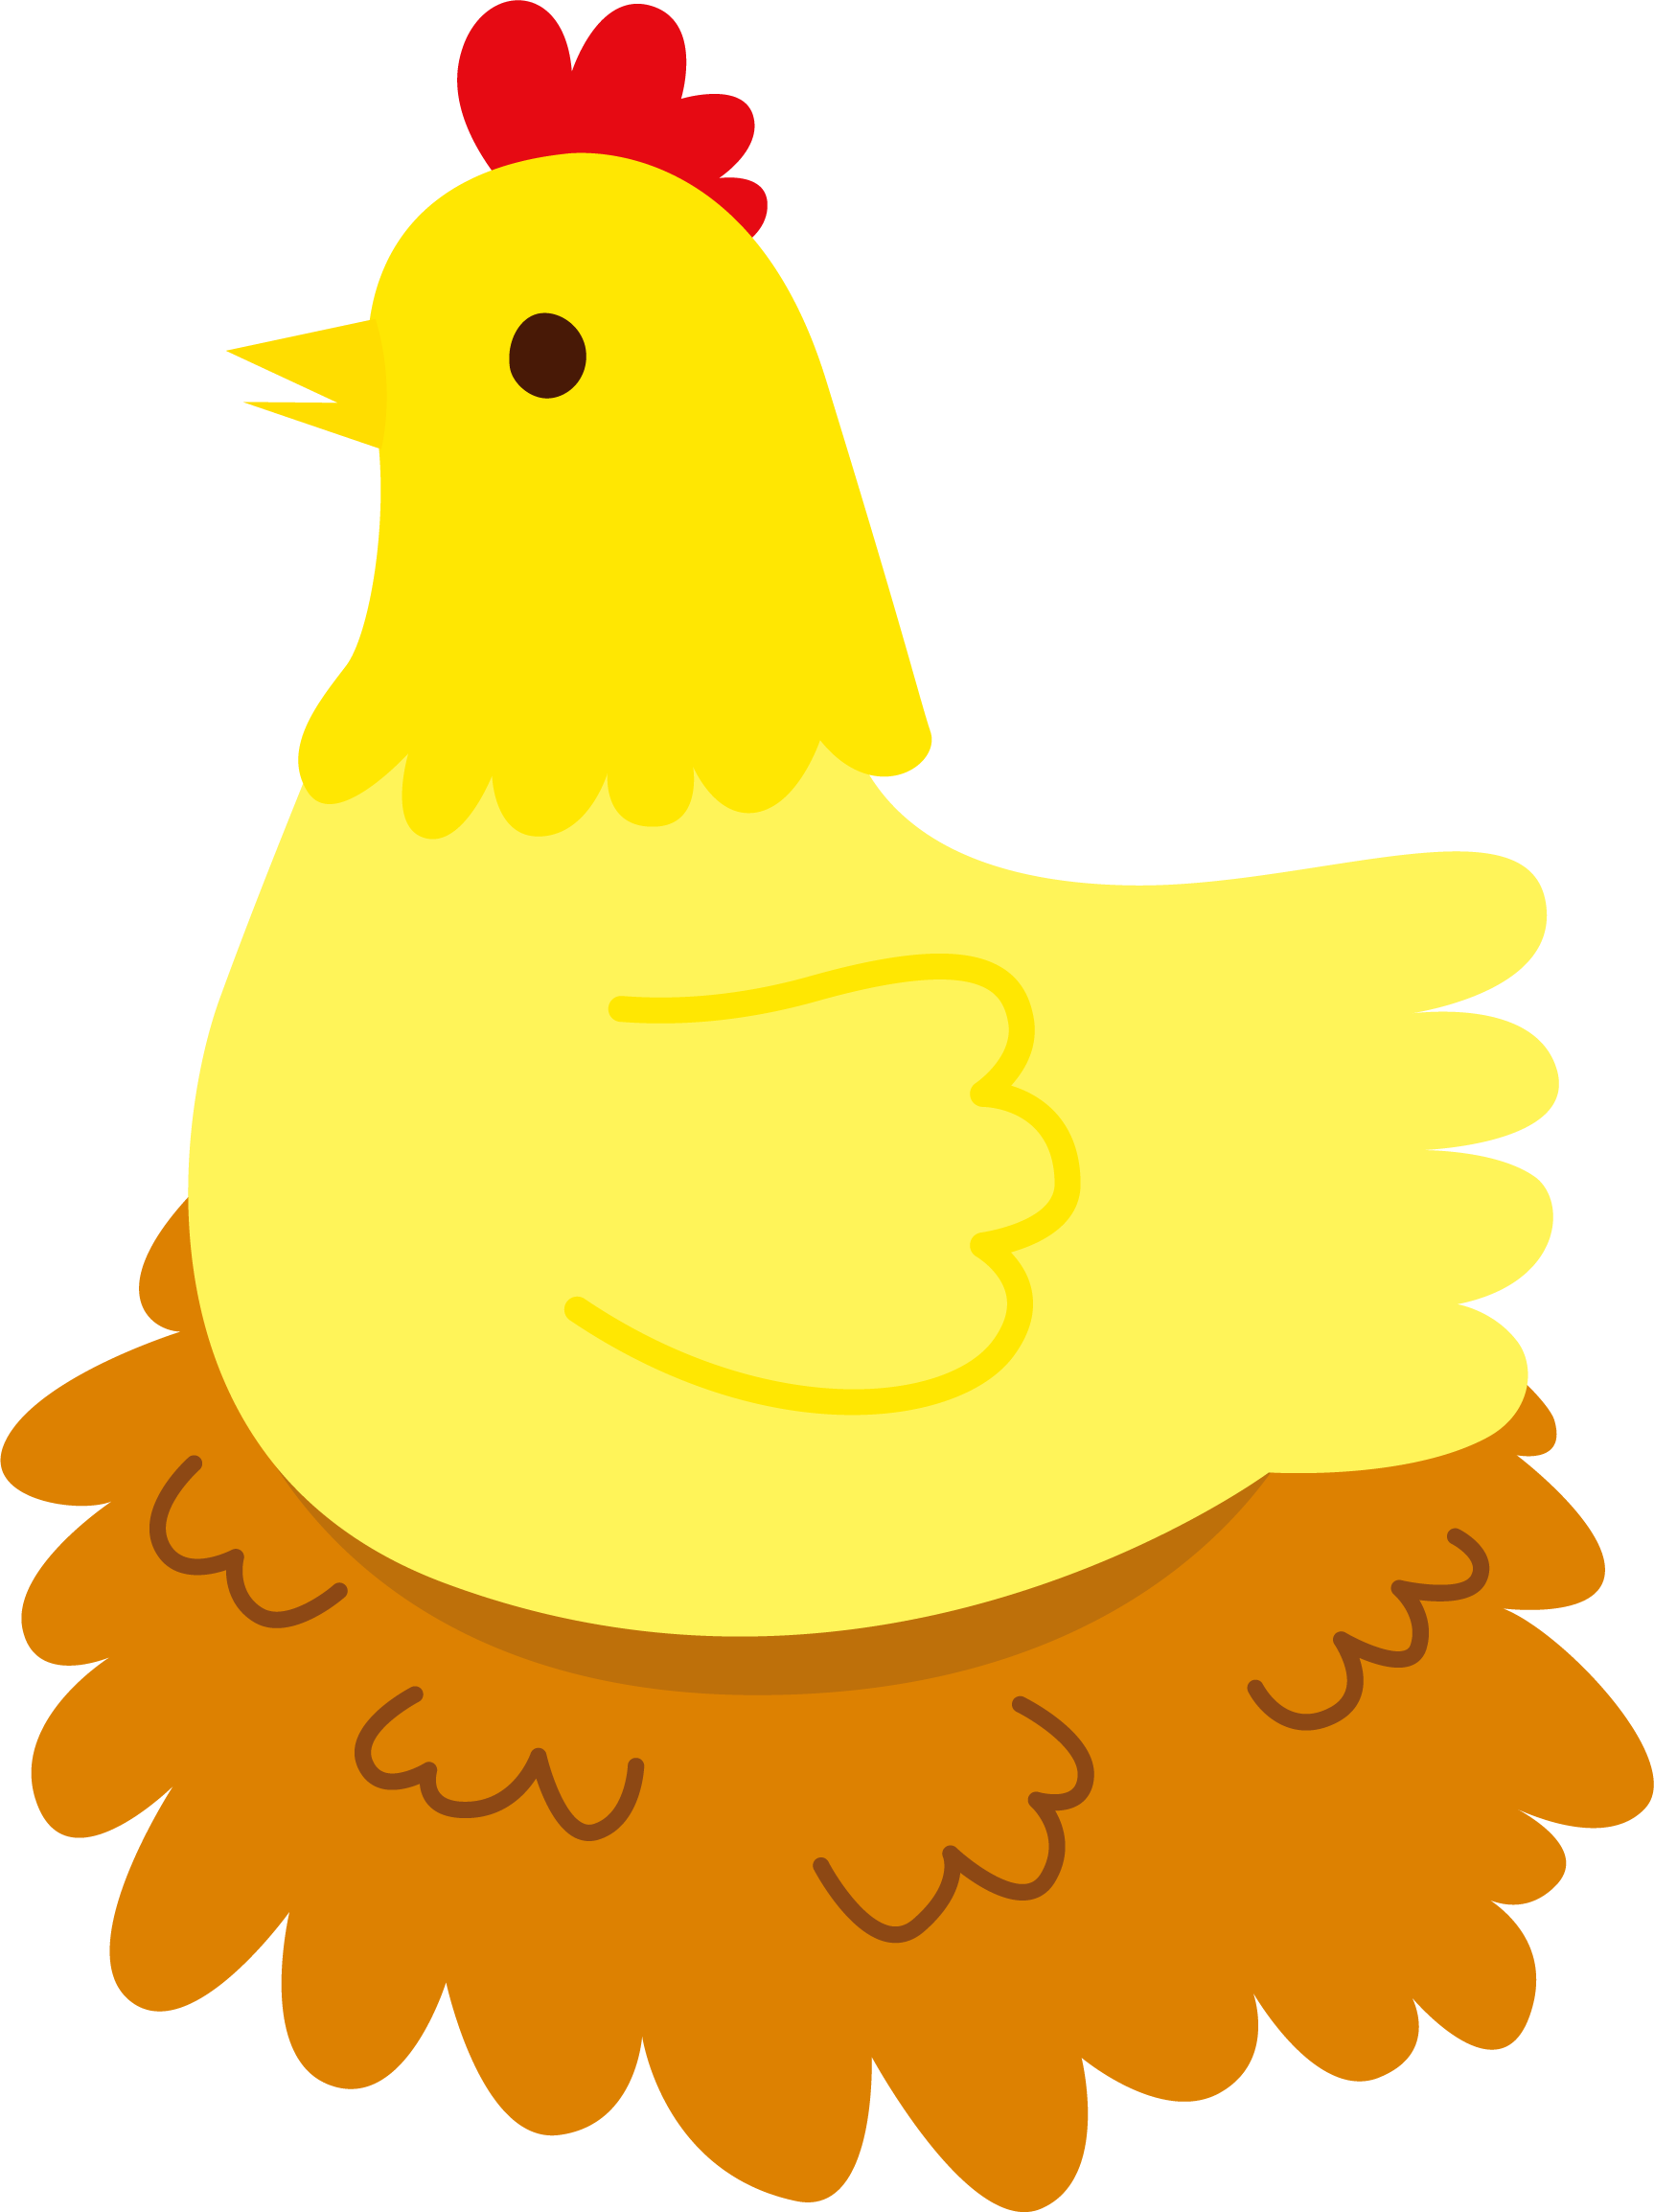 Fazenda bb png minus. Ducks clipart short animal